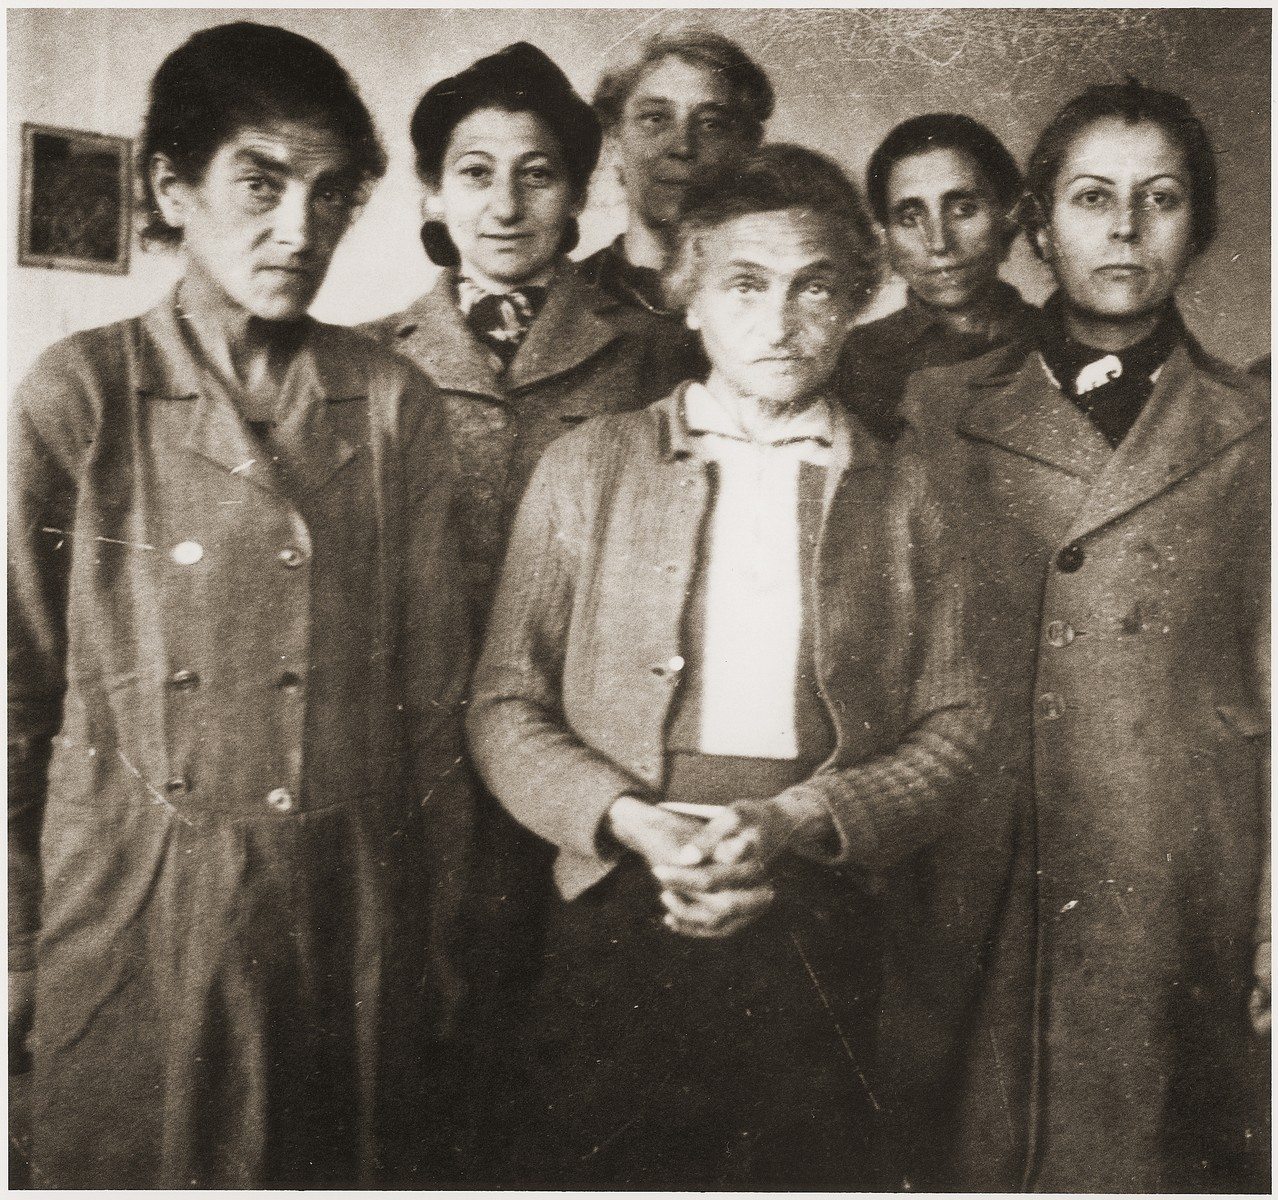 A group of malnourished women in the Rivesaltes internment camp.